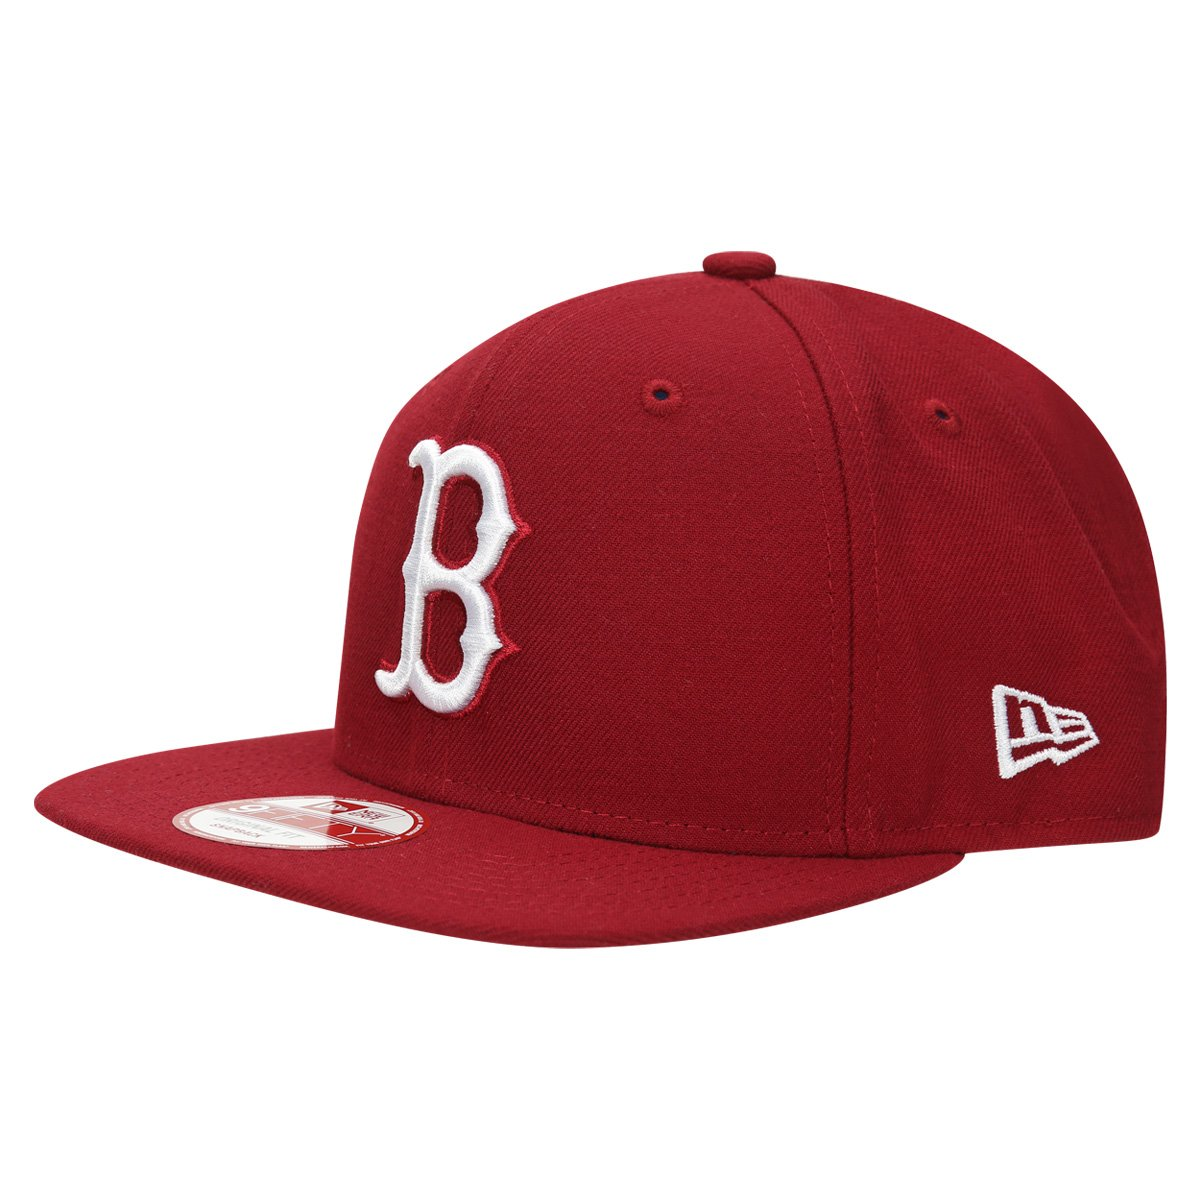 890b0df4484d3 Boné New Era 950 Of Sn White On Cardinal Boston Red Sox - Compre ...